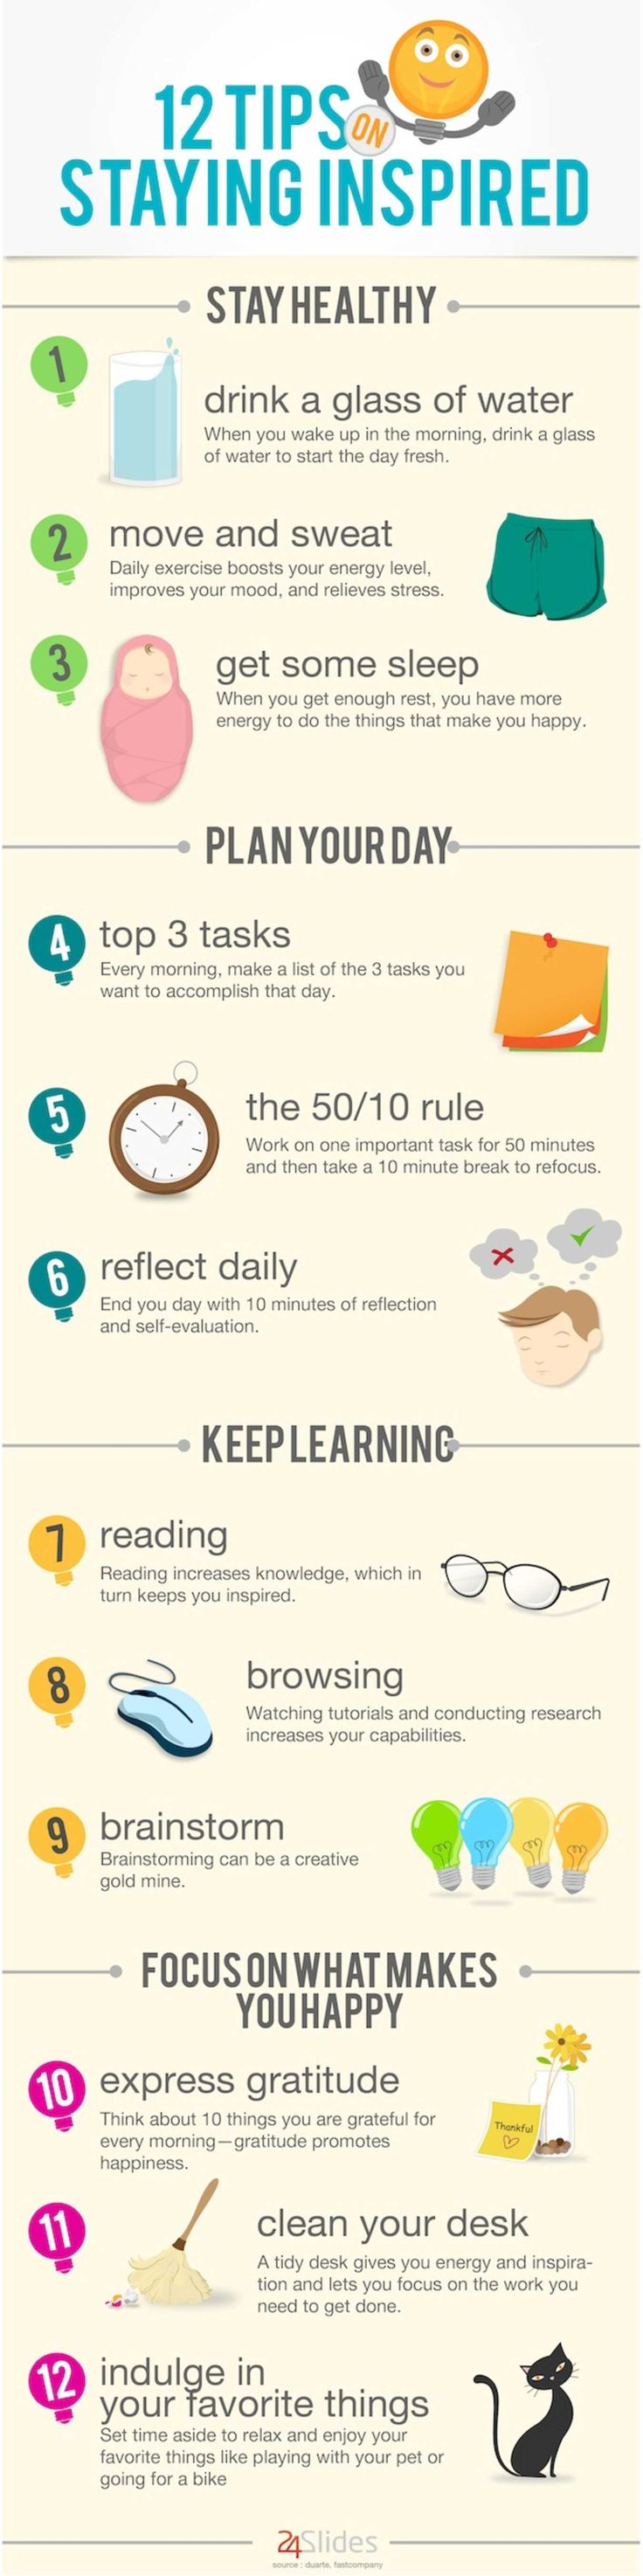 12 Tips on Staying Inspired   Infographic.